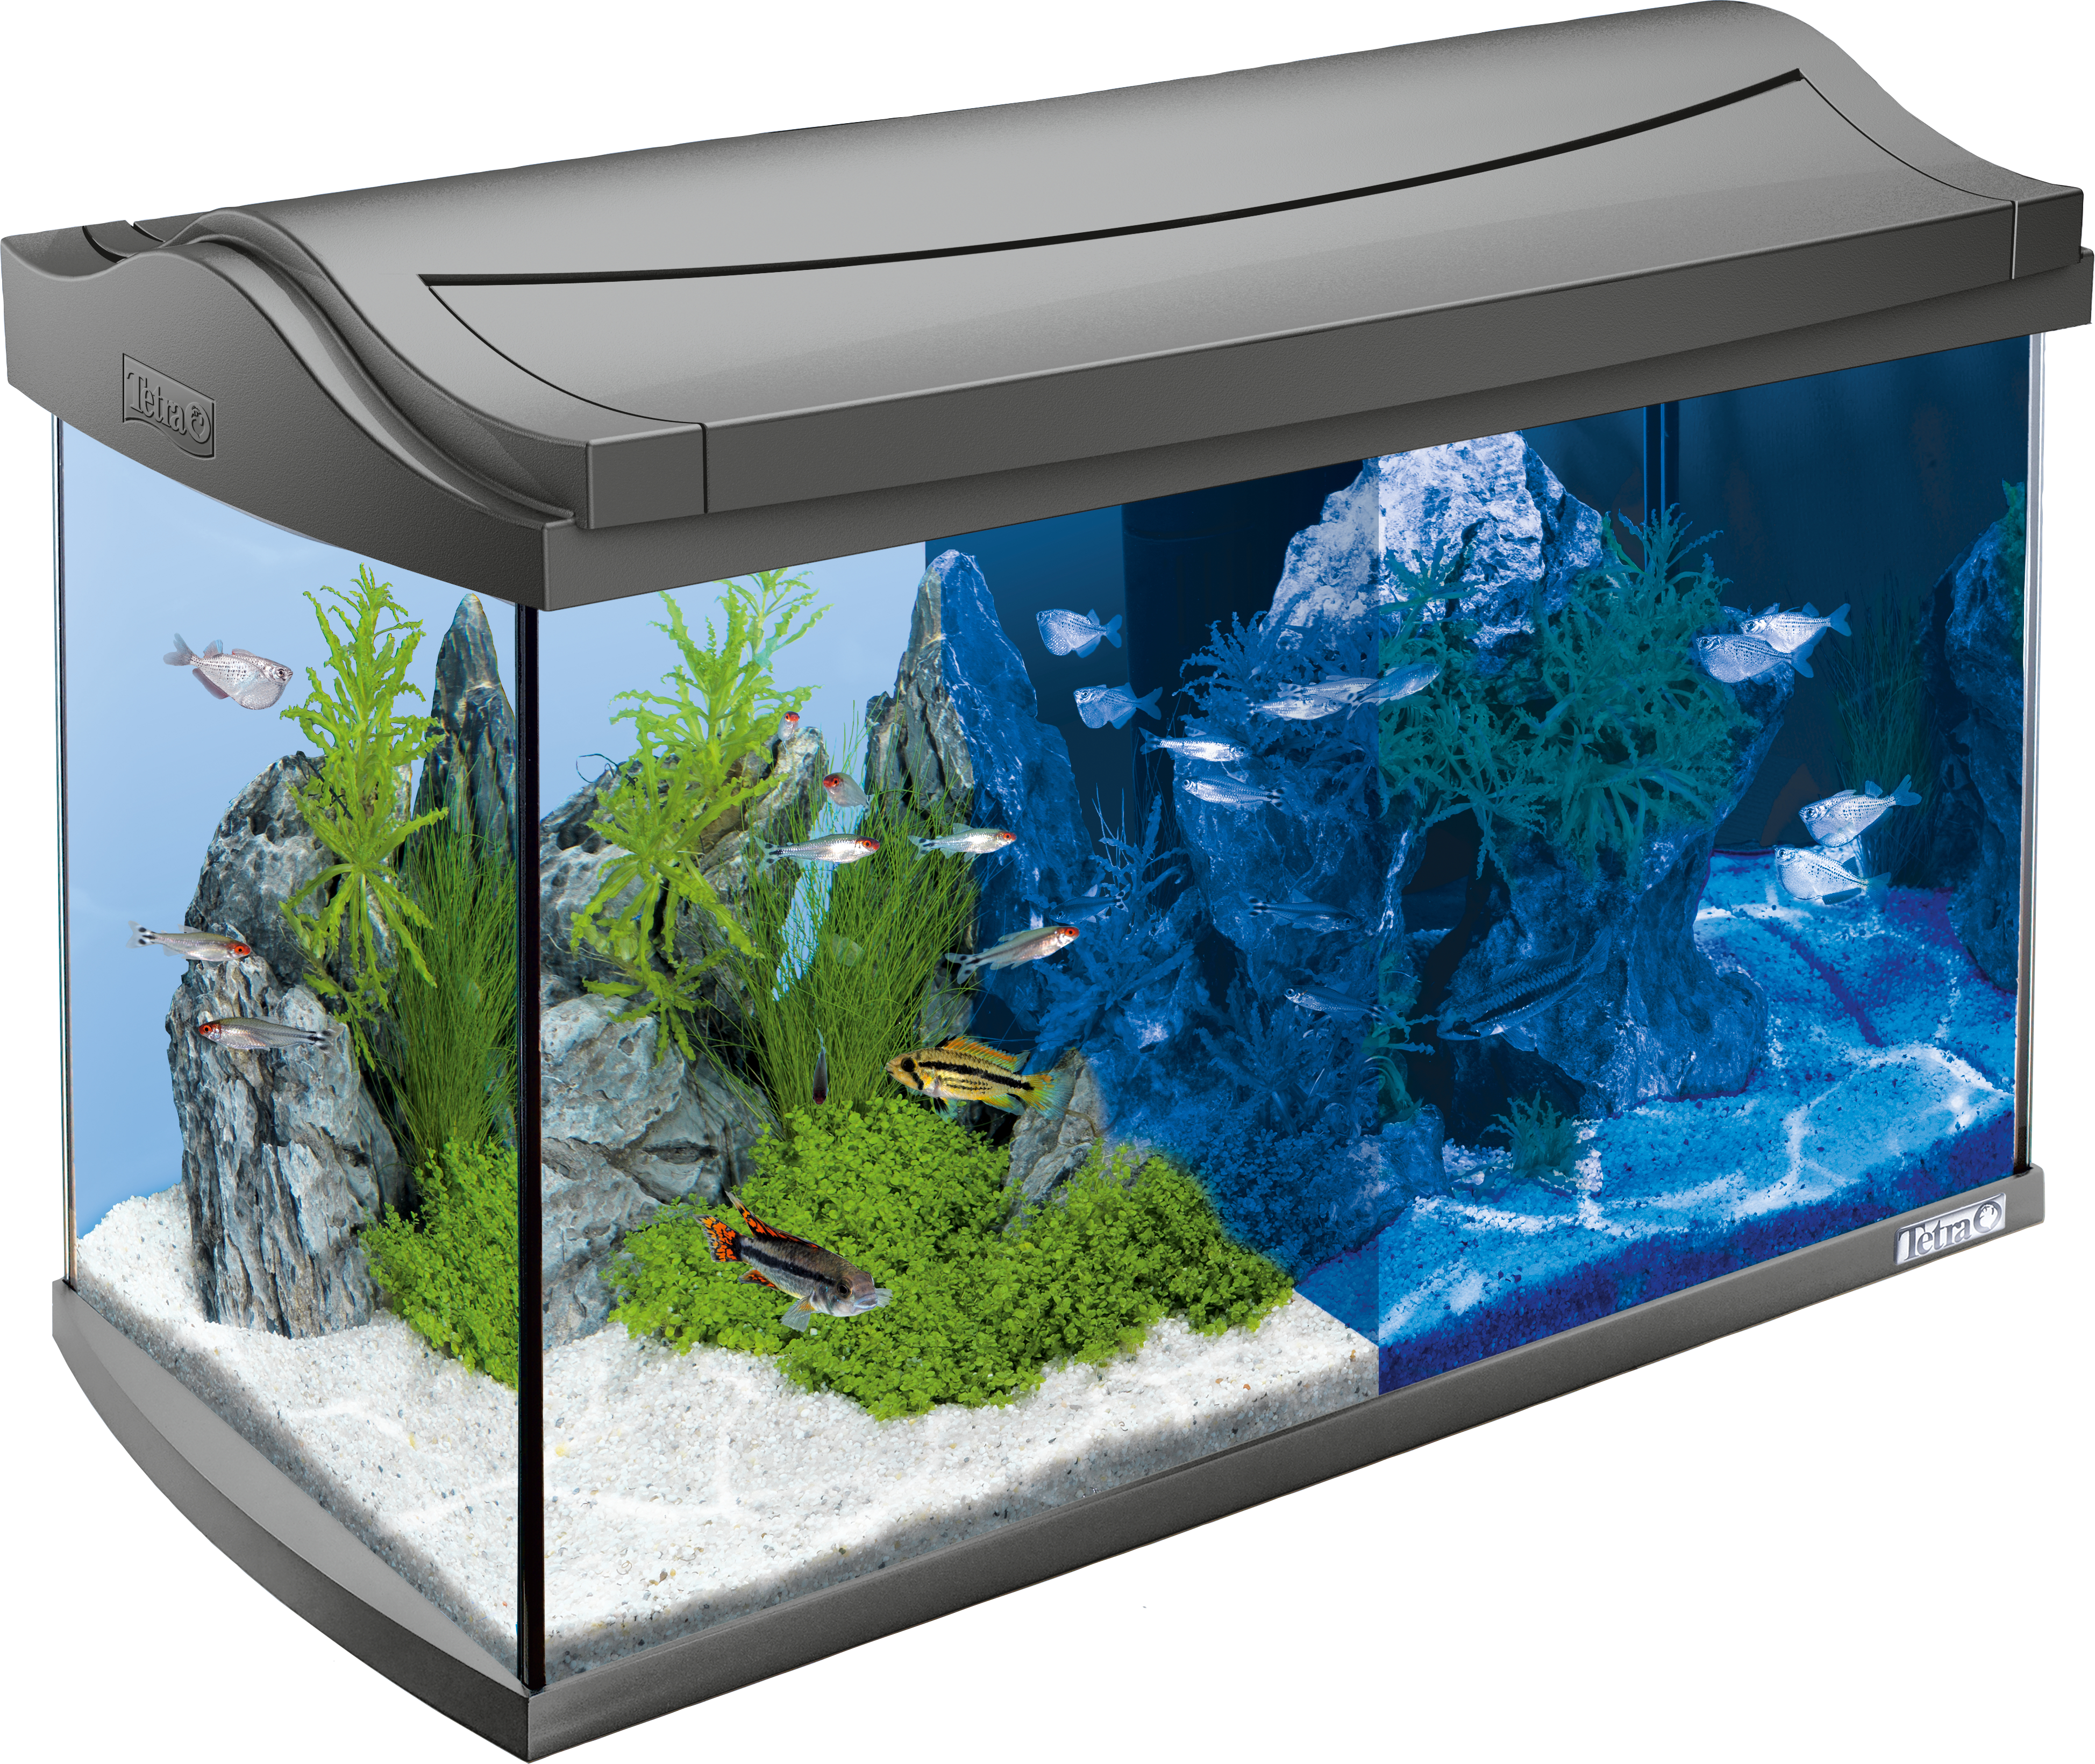 tetra aquaart led aquarium komplettset 60l. Black Bedroom Furniture Sets. Home Design Ideas